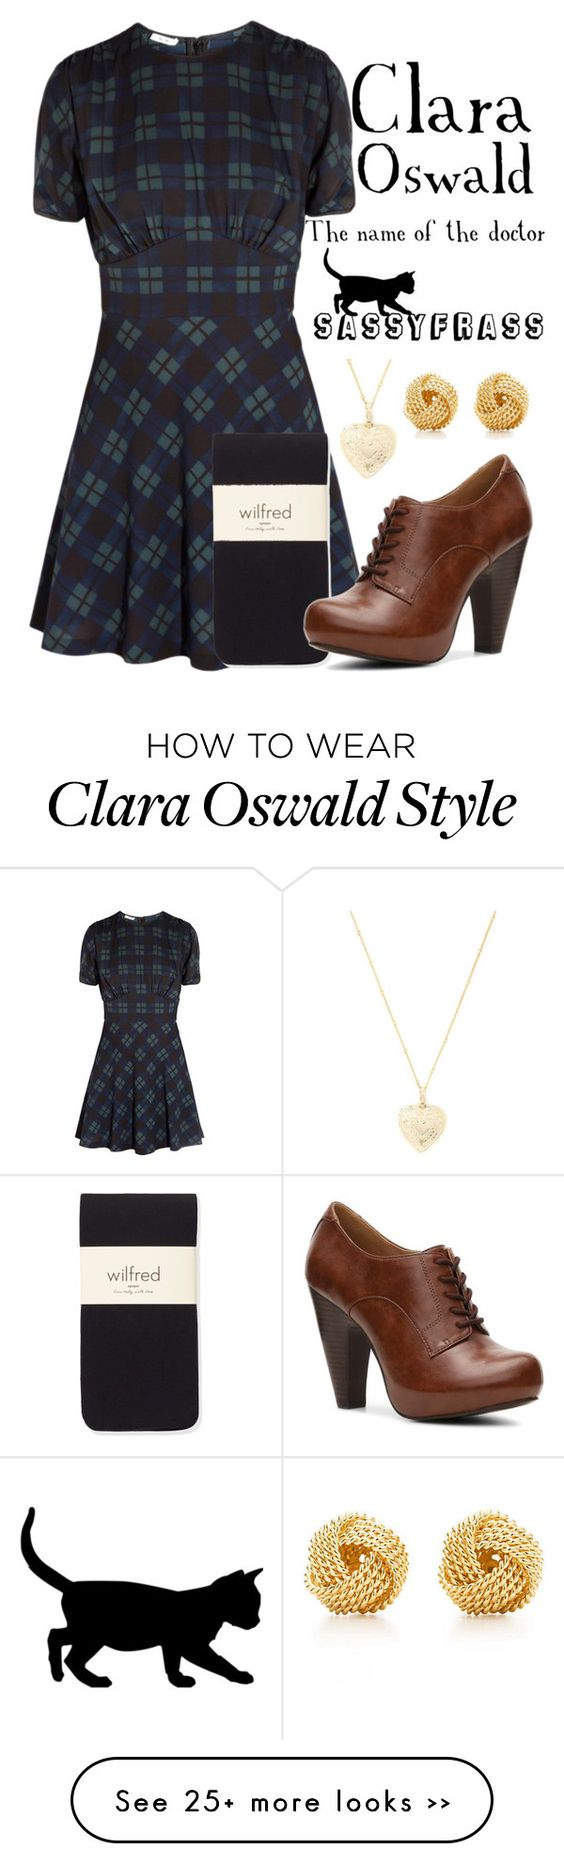 """""""Clara Oswald - The Name of the Doctor"""" by sassyfrasscat on Polyvore"""